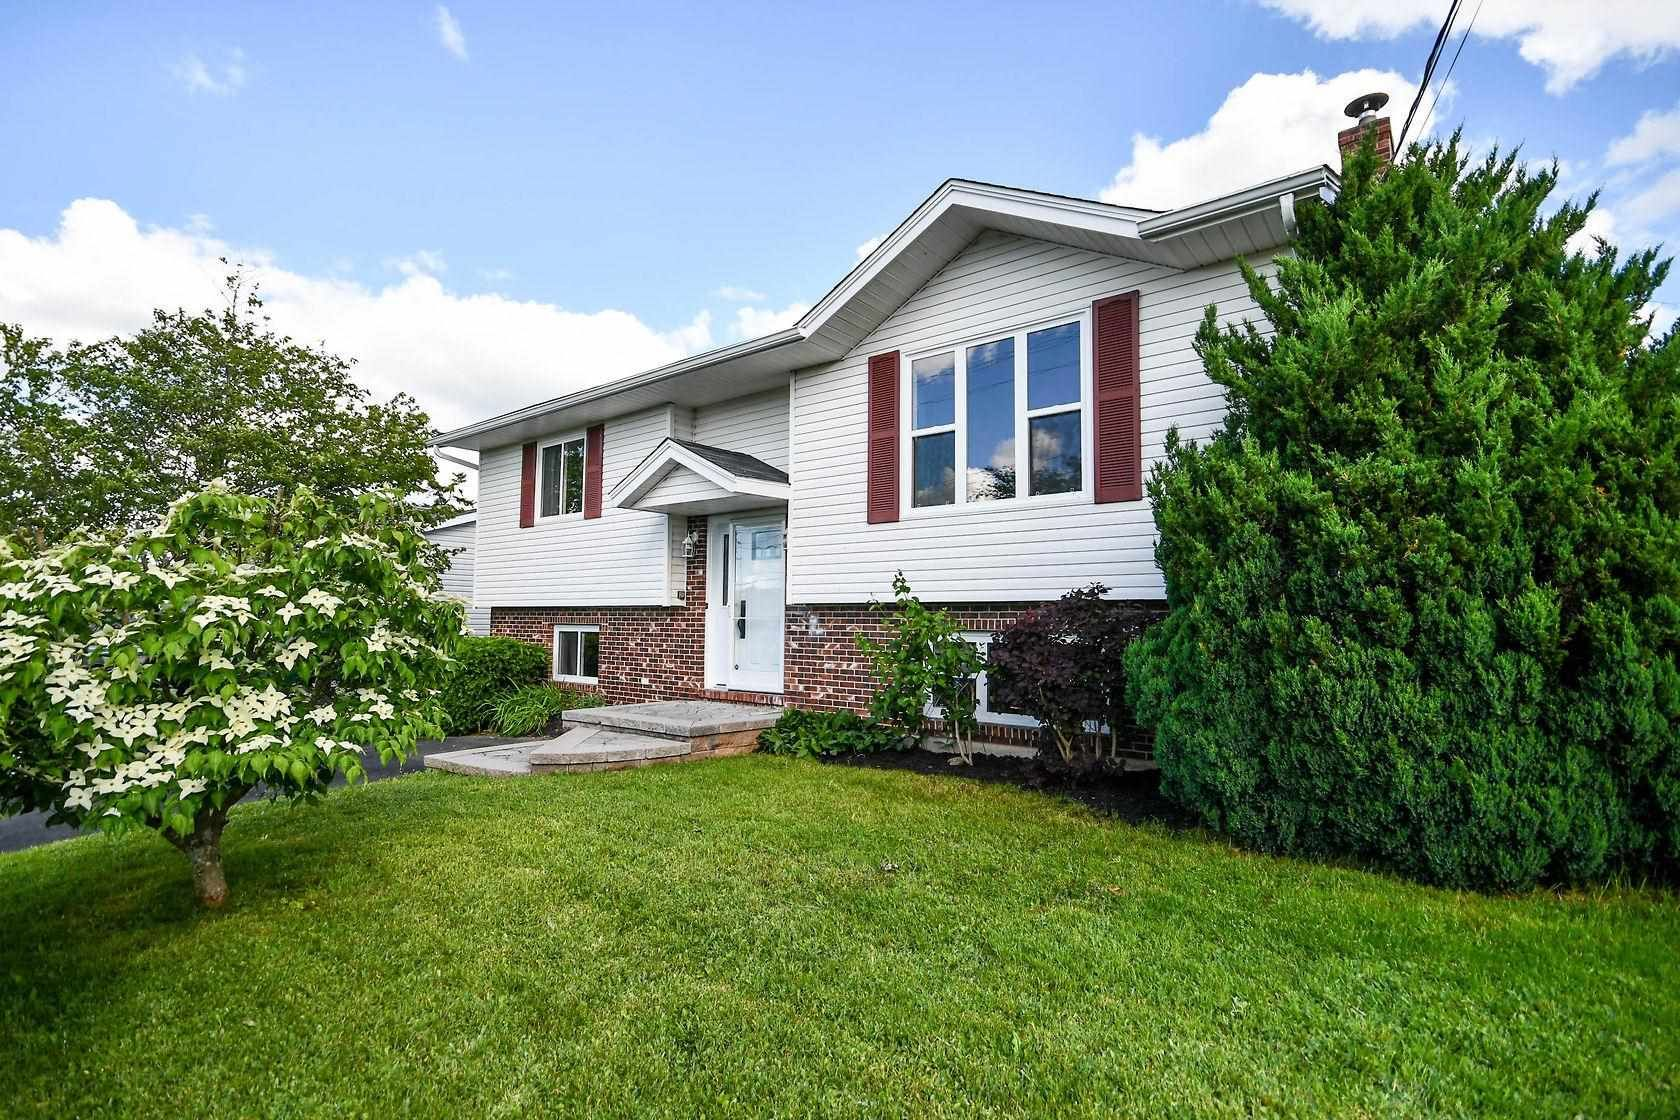 Main Photo: 59 Astral Drive in Dartmouth: 16-Colby Area Residential for sale (Halifax-Dartmouth)  : MLS®# 202116192